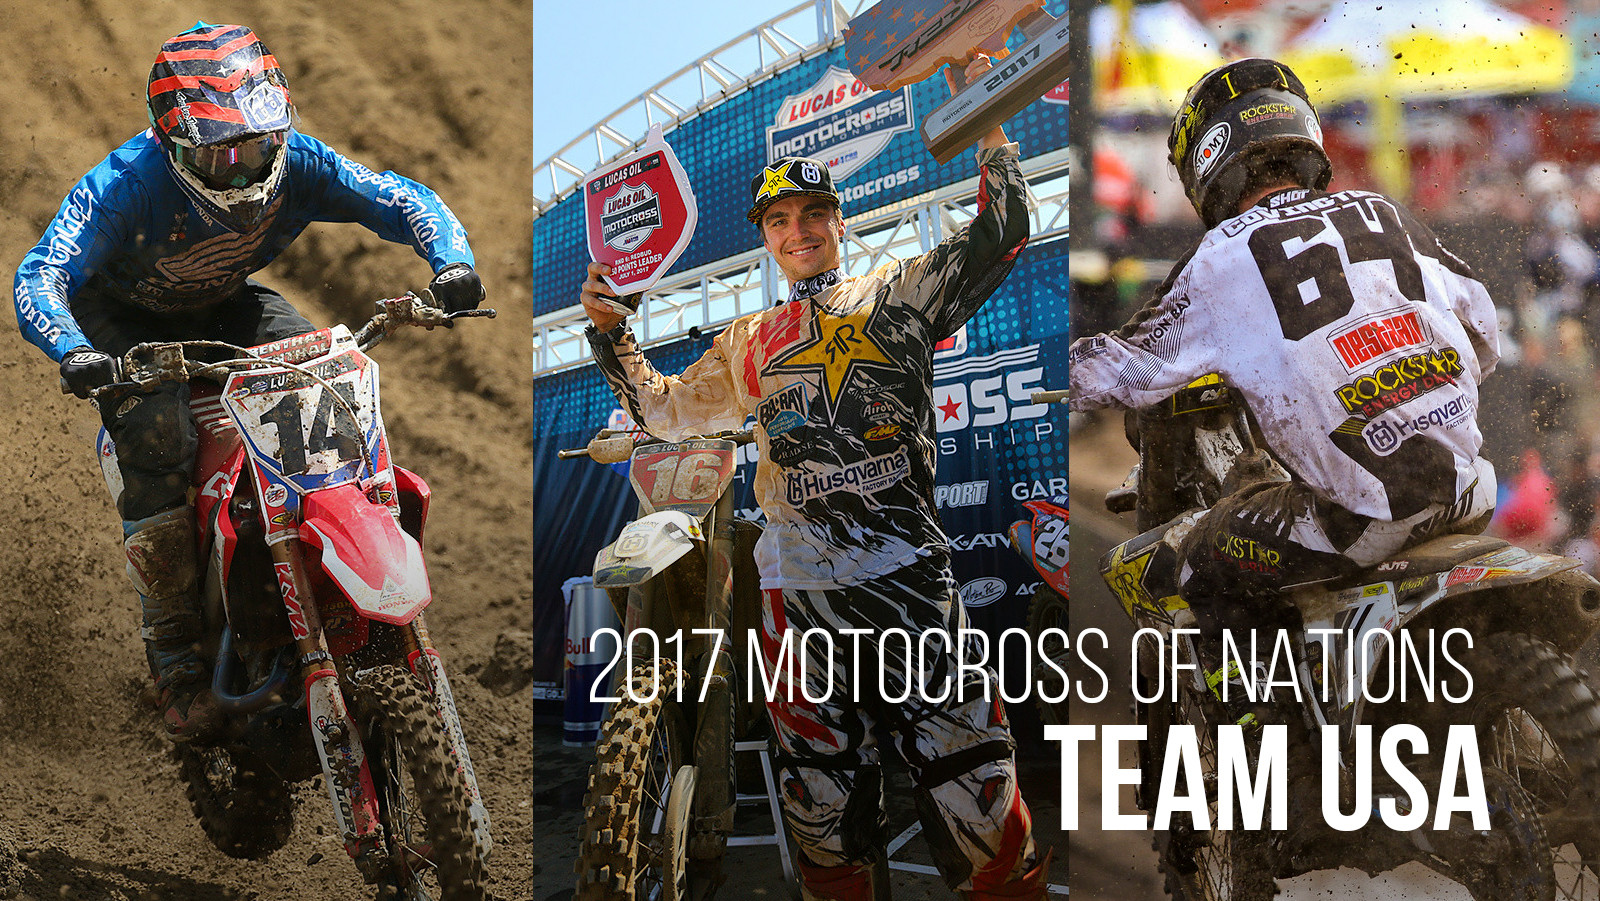 Seely, Osborne, and Covington are Team USA for '17